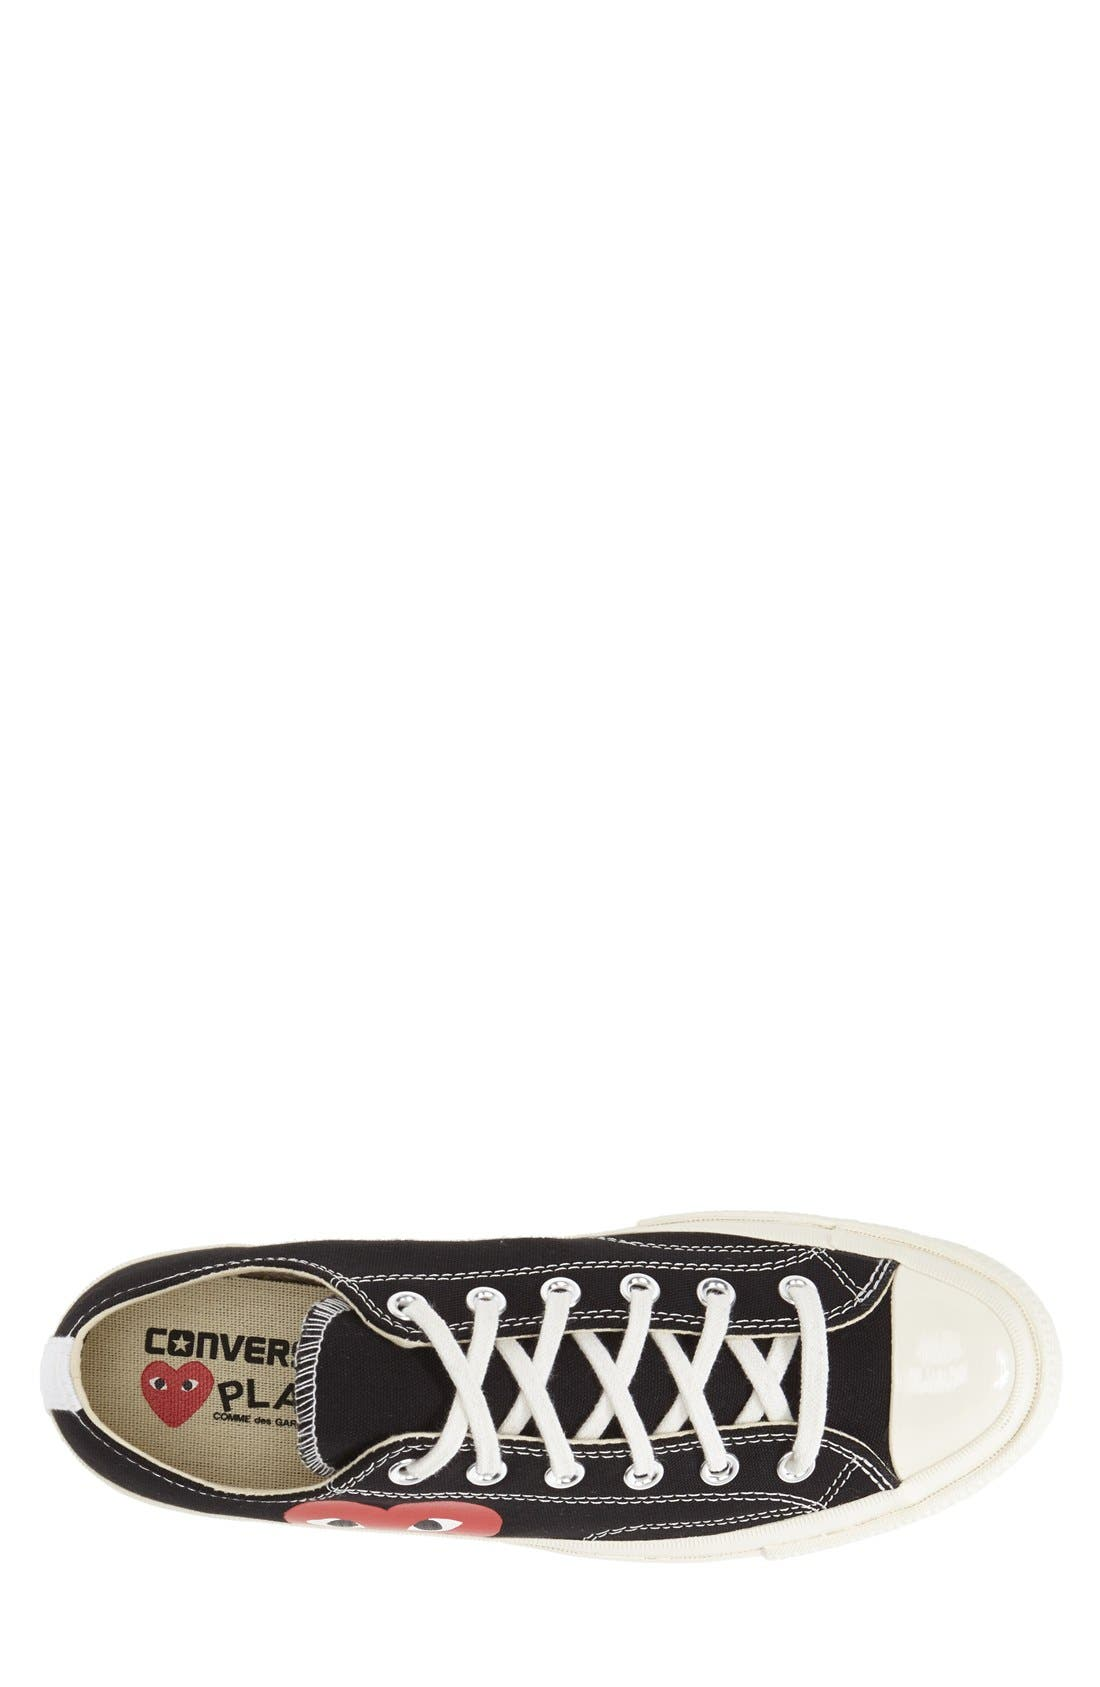 COMME DES GARÇONS, PLAY x Converse Chuck Taylor<sup>®</sup> Low Top Sneaker, Alternate thumbnail 4, color, BLACK CANVAS